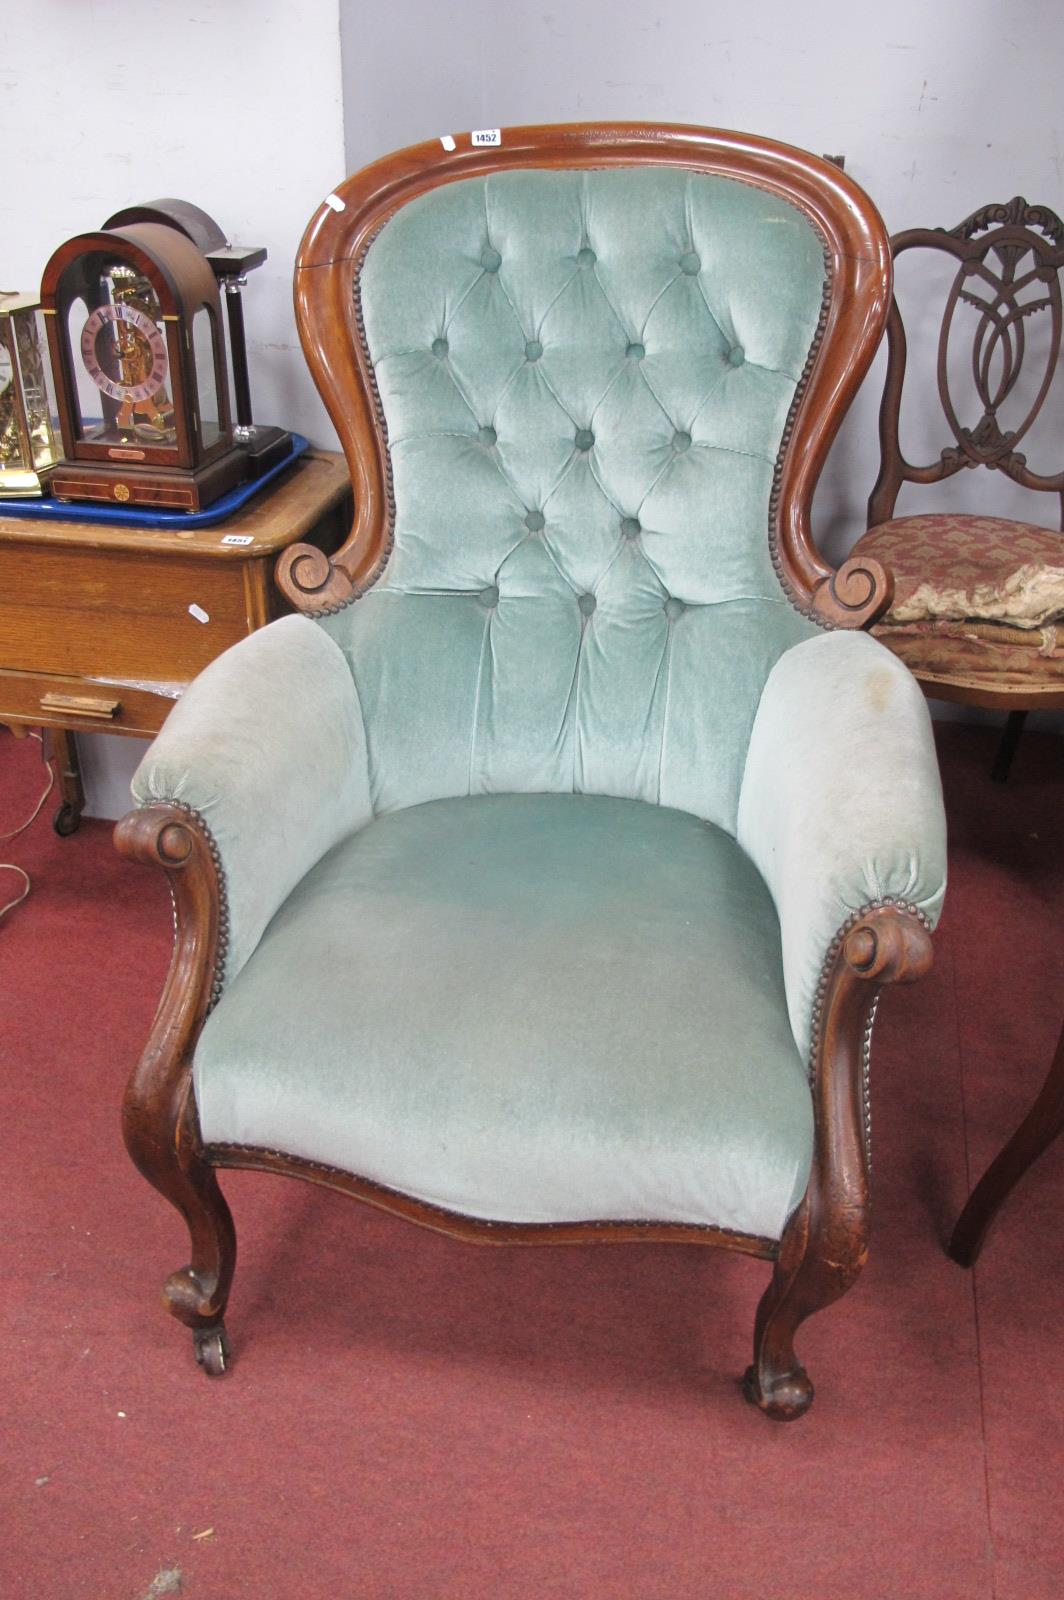 A XIX Century Mahogany Framed Arm Chair, with balloon back, scrolled hand rests, upholstered in a